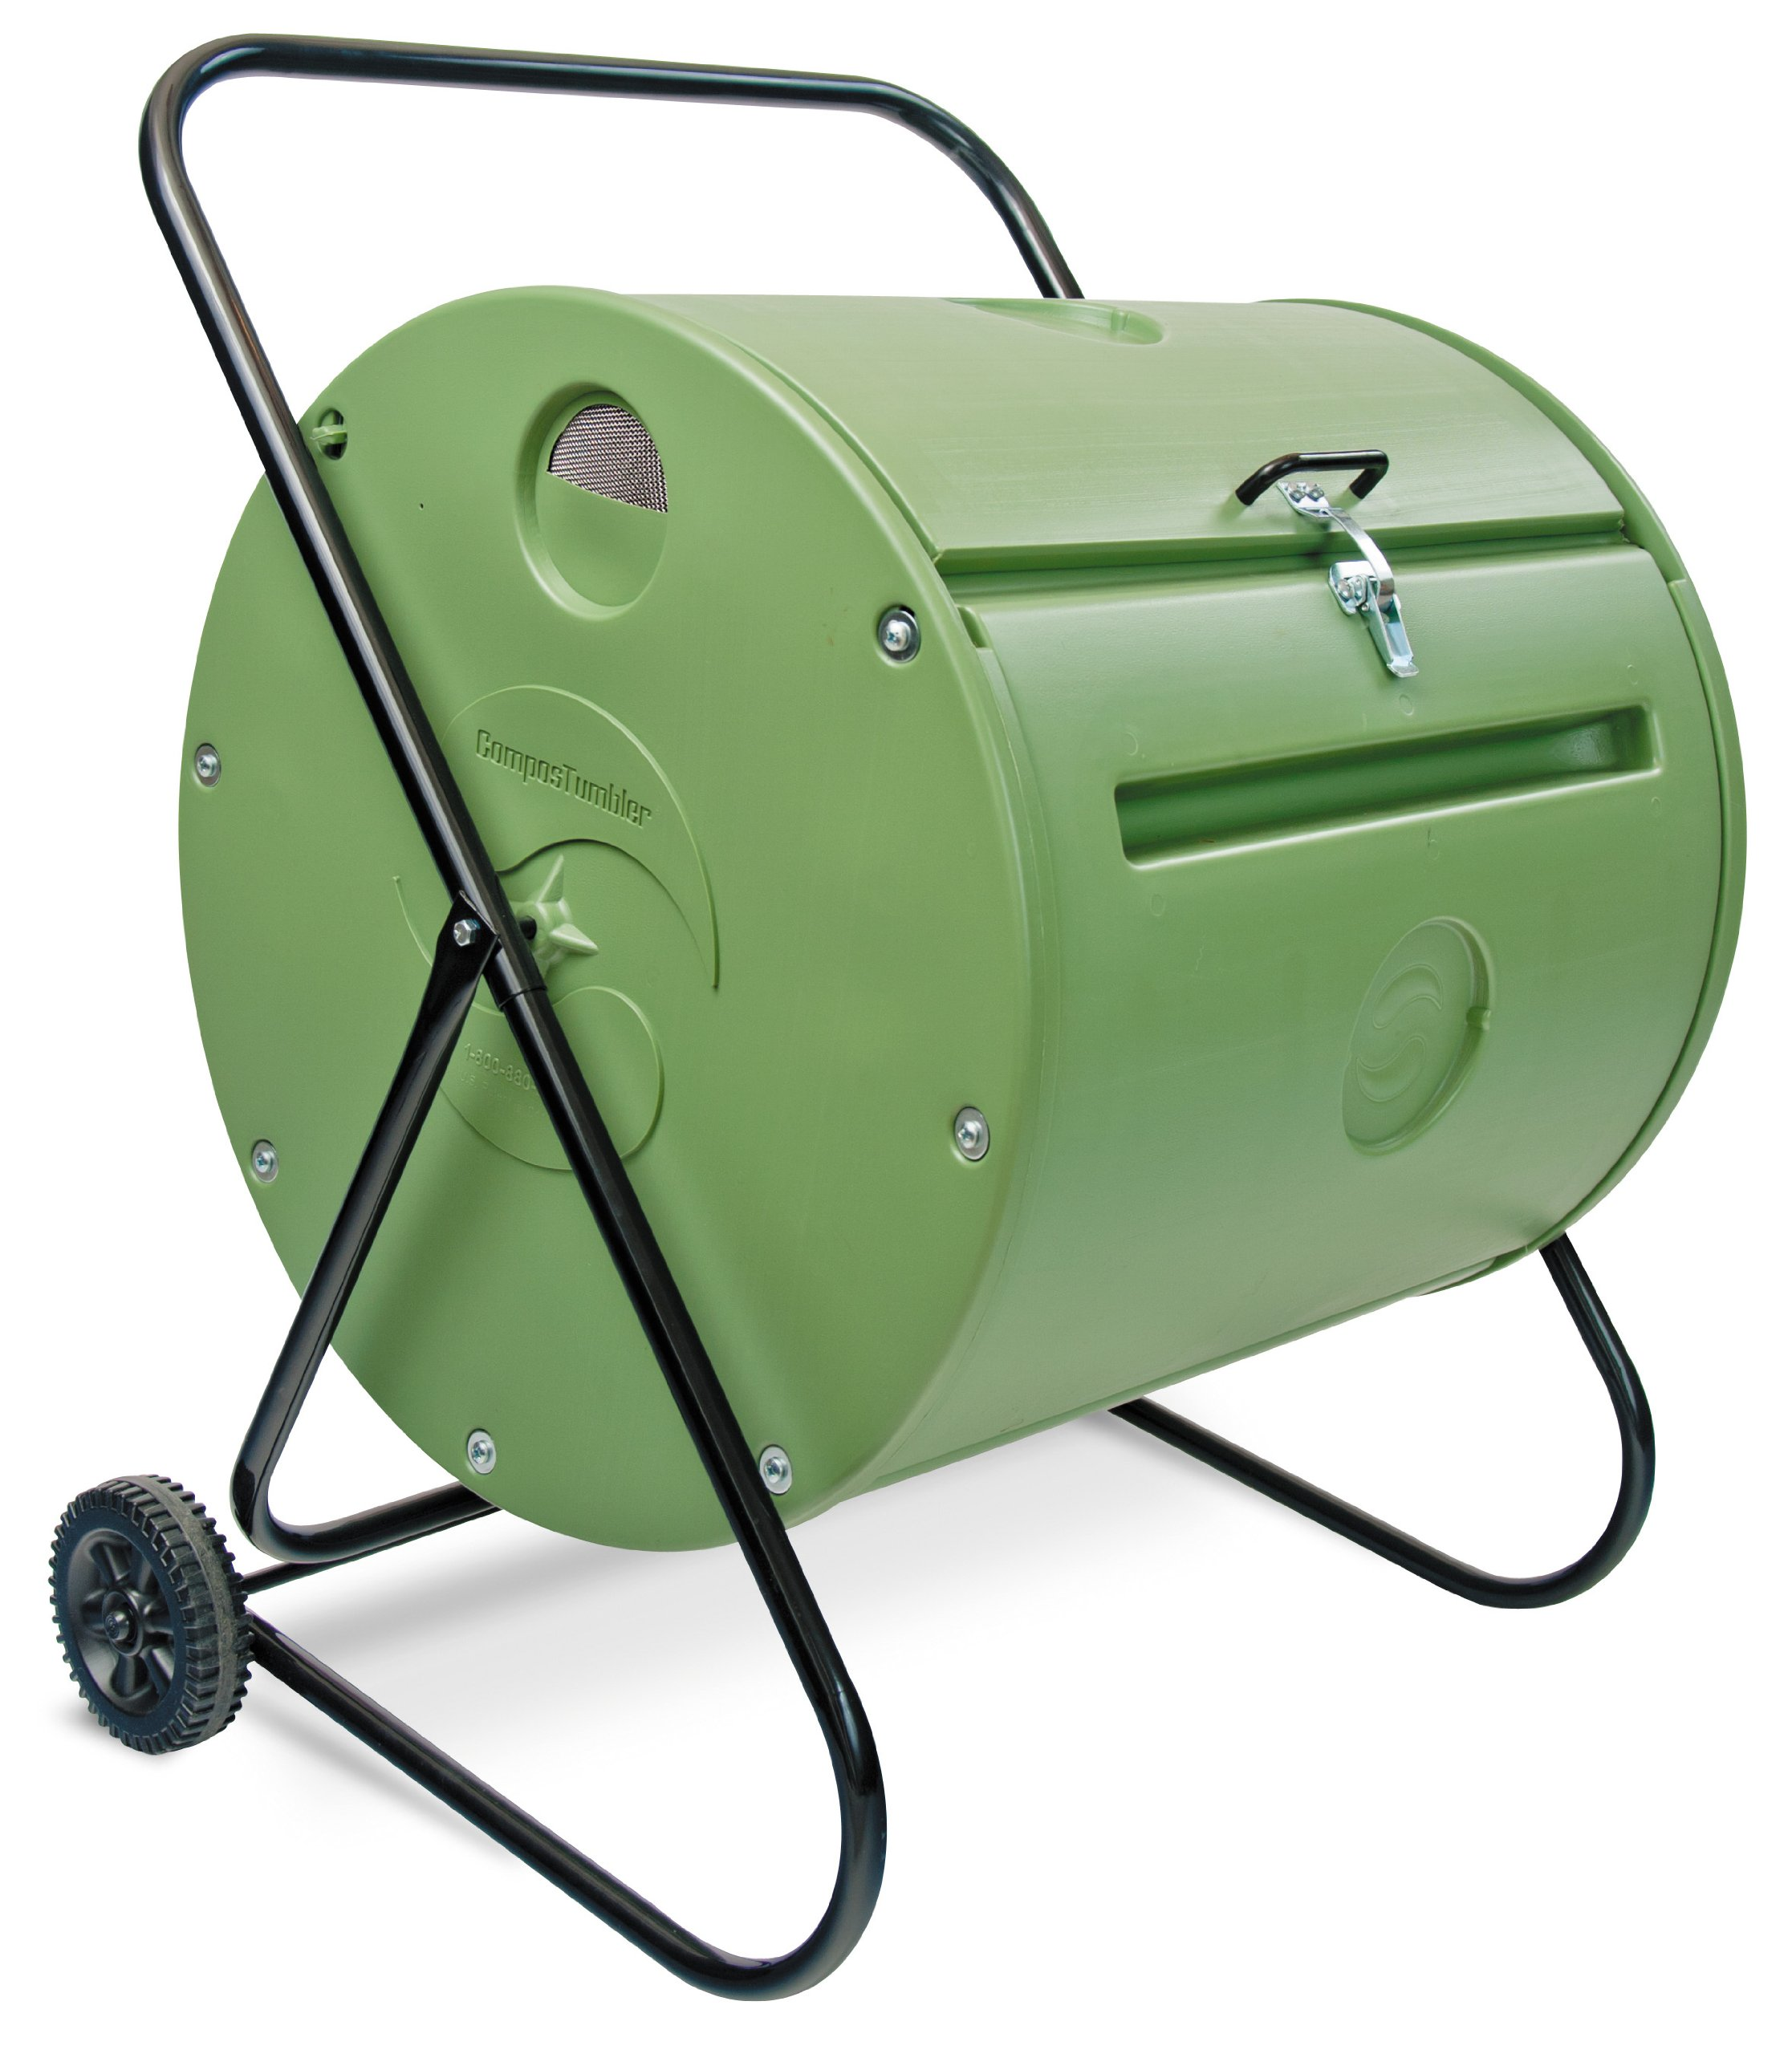 Mantis Back Porch ComposTumbler CT08002 - Engineered to Make Compost Fast - Holds 37 Gallons - Low Cost Per Gallon - Mobile Rolls Direct to the Garden by Mantis